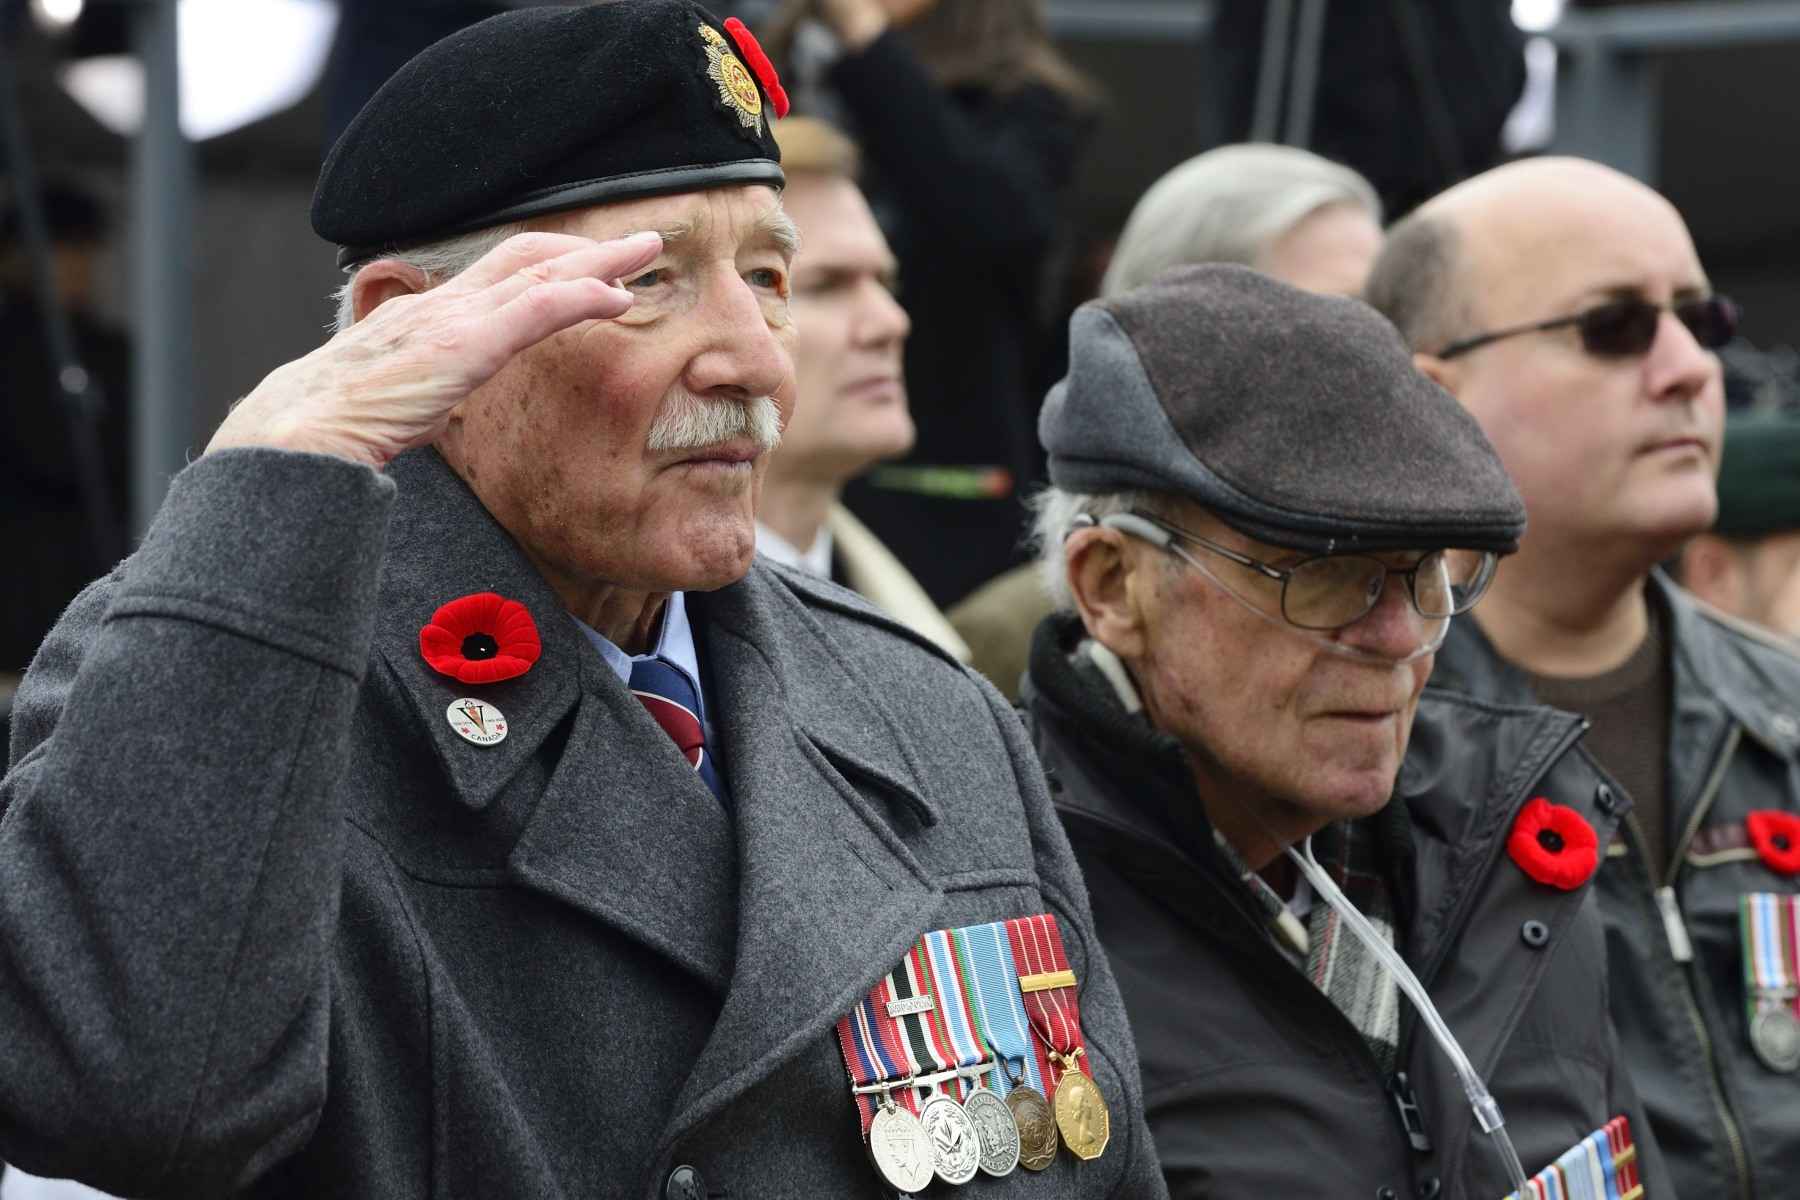 On this day of morning, veterans stood up proudly at the foot of the National War Memorial.